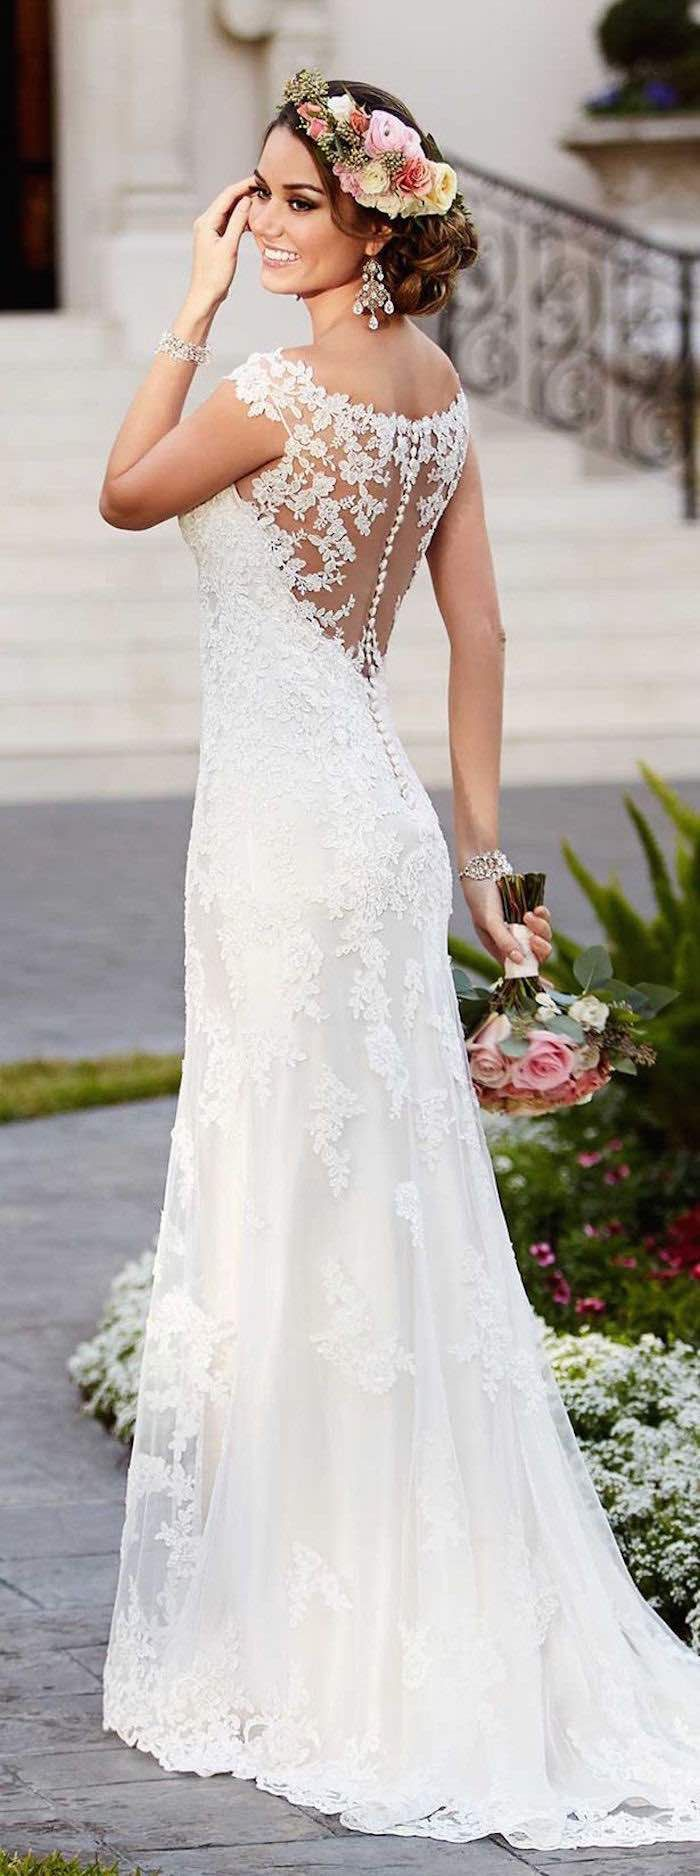 best événements images on pinterest wedding ideas gown wedding